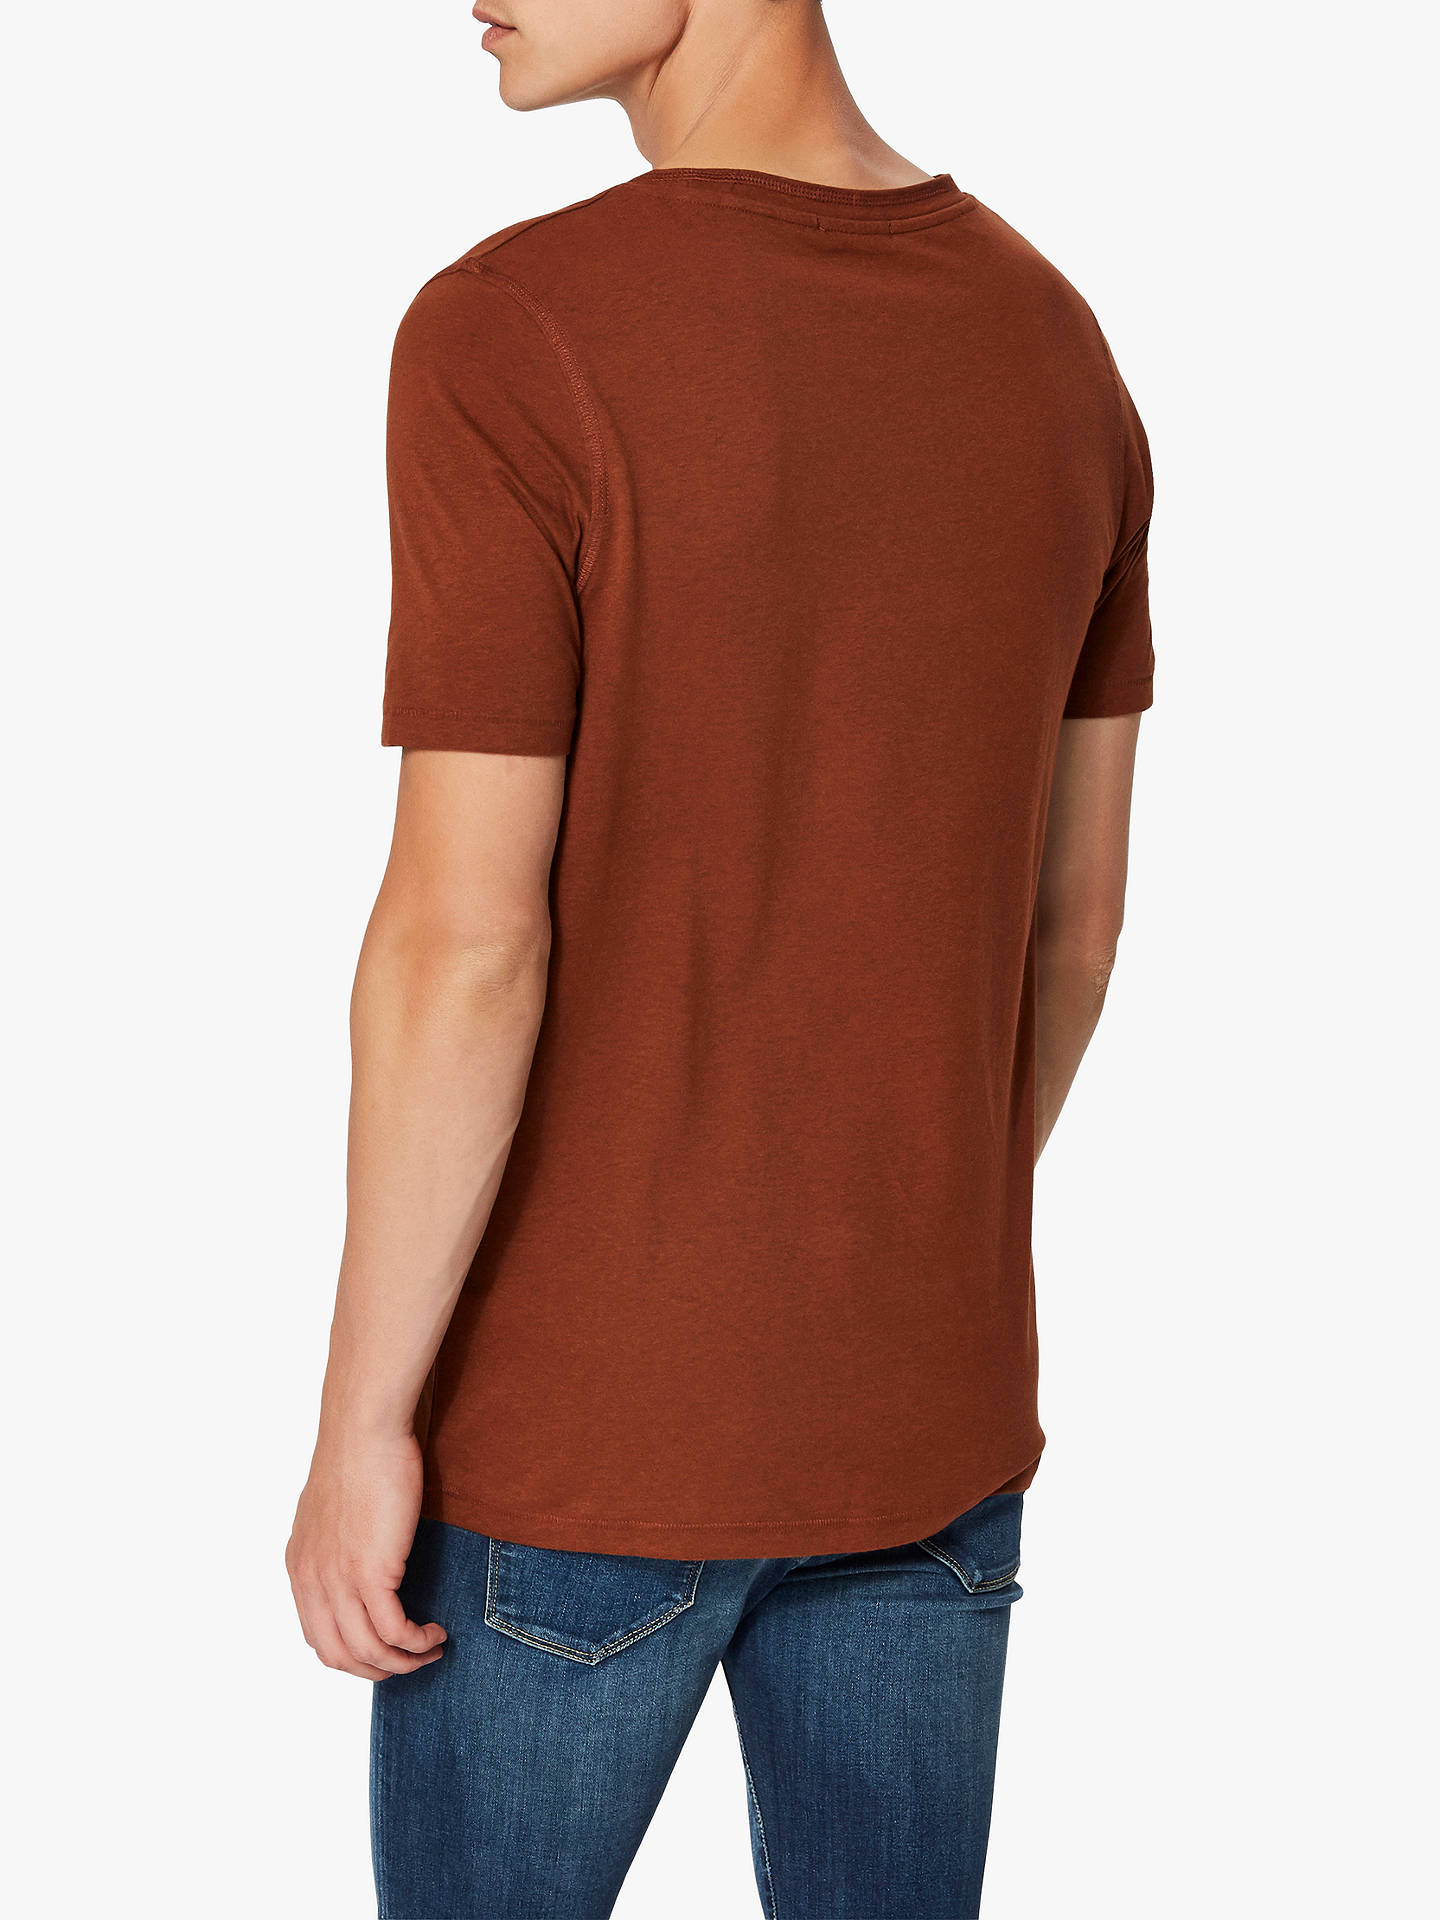 Buy Selected Homme Gary Short Sleeve Organic Cotton T-Shirt, Tortoiseshell, XL Online at johnlewis.com